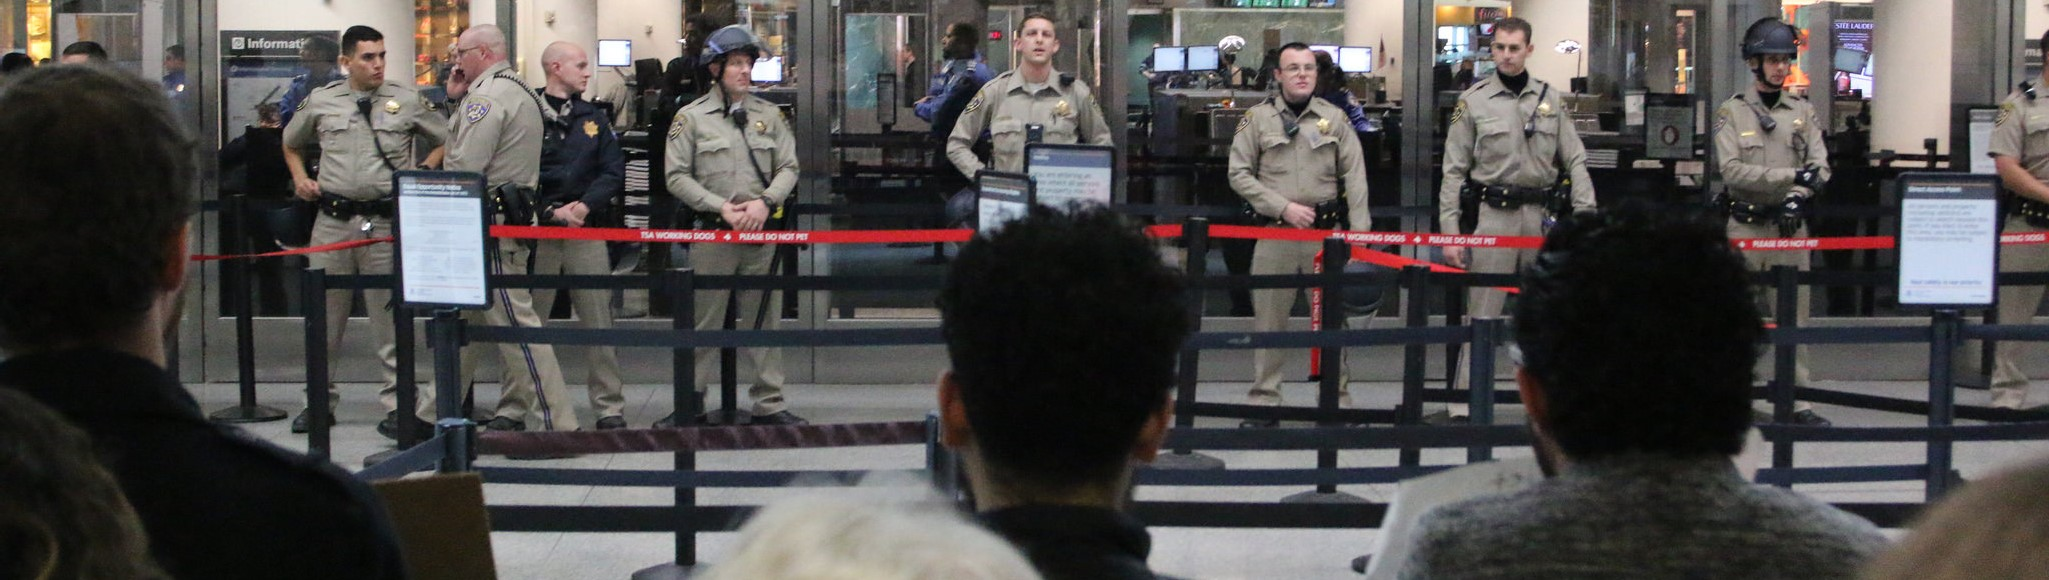 Holding the line against travel ban protesters at San Francisco International Airport (Photo: Flickr user Quinn Norton)